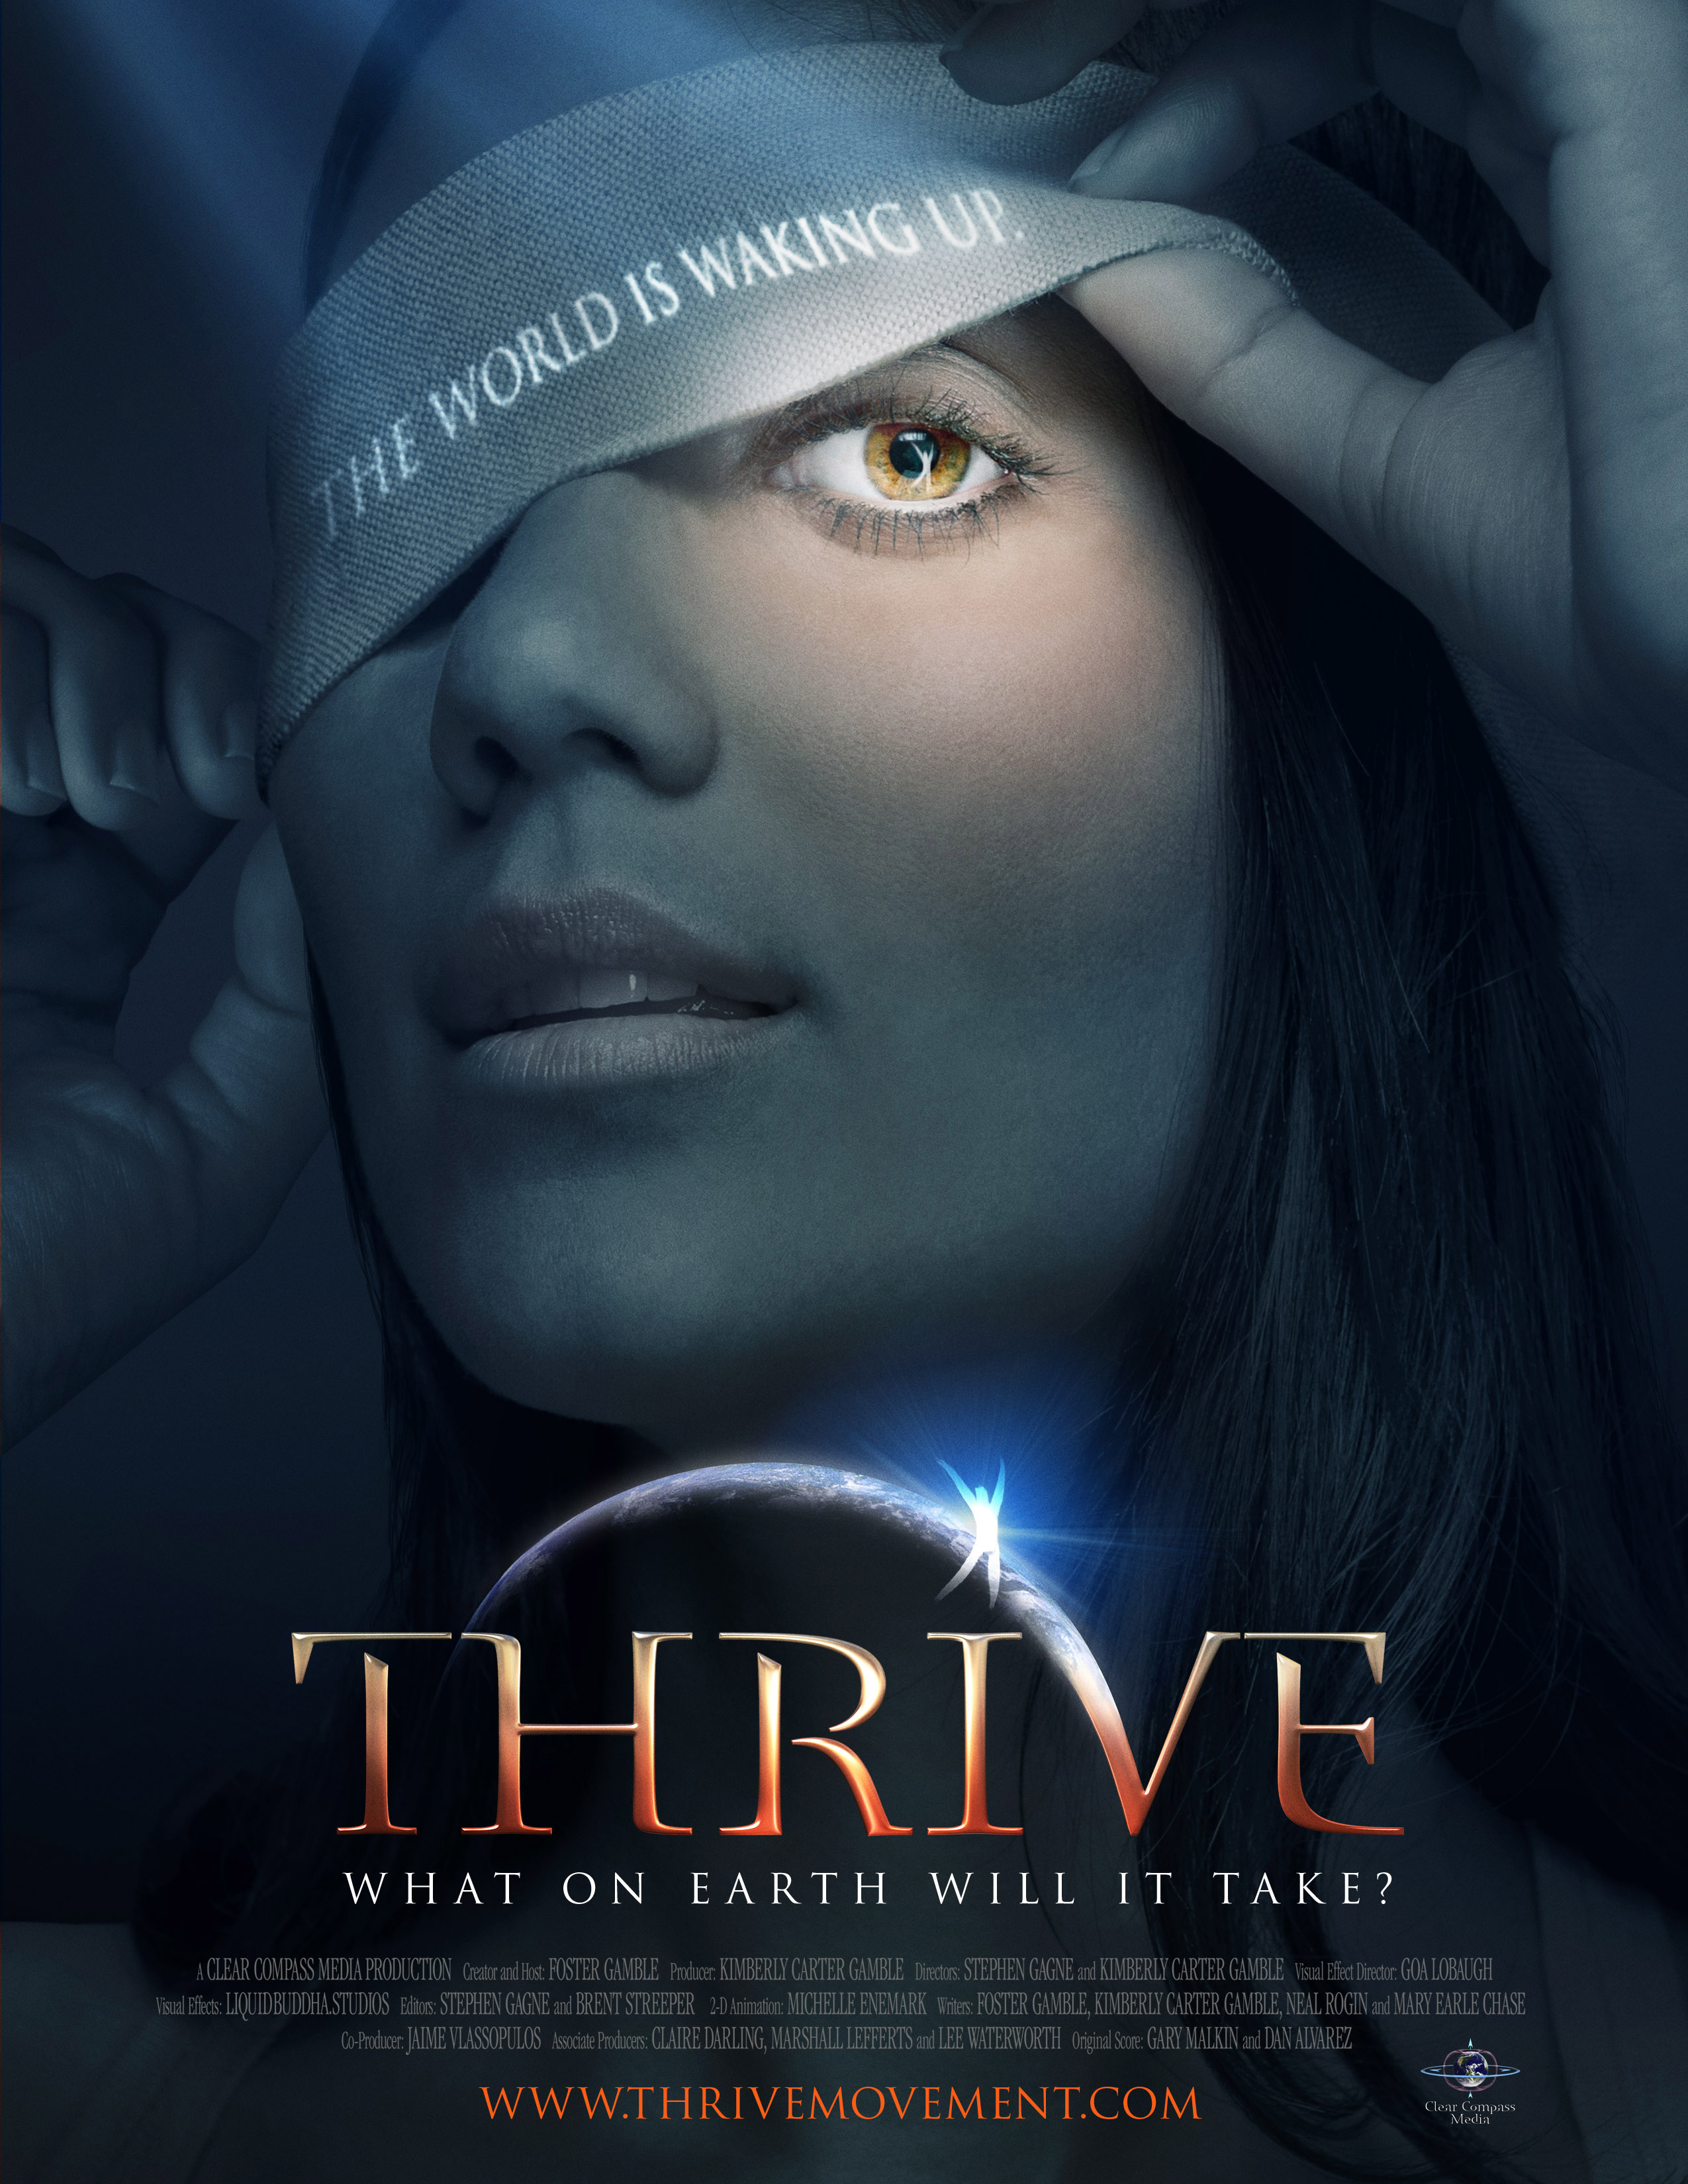 Movimento Thrive